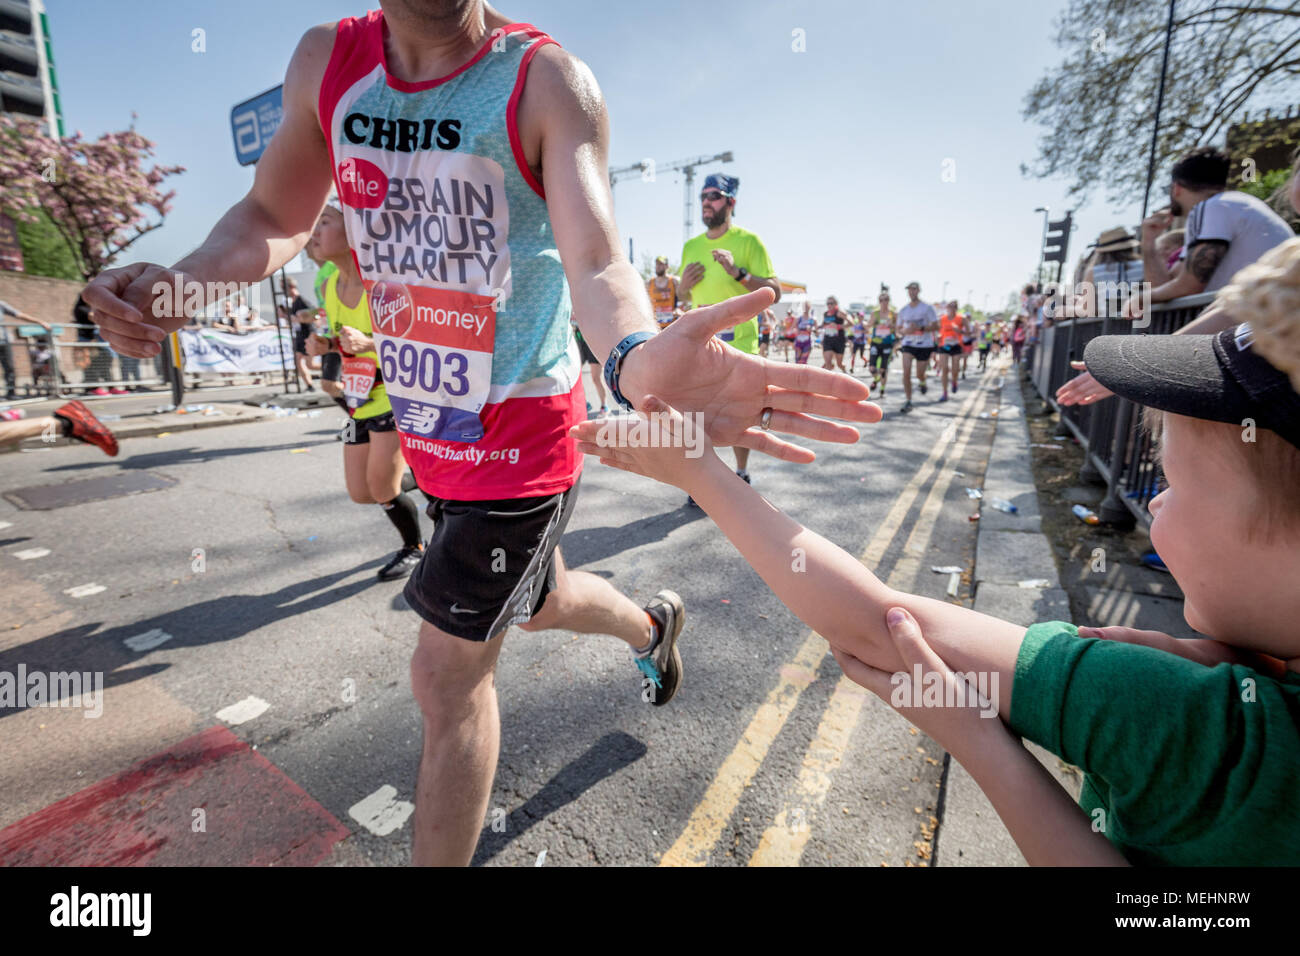 London, UK. 22nd April, 2018. 38th London Marathon passes through Deptford. Credit: Guy Corbishley/Alamy Live News Stock Photo